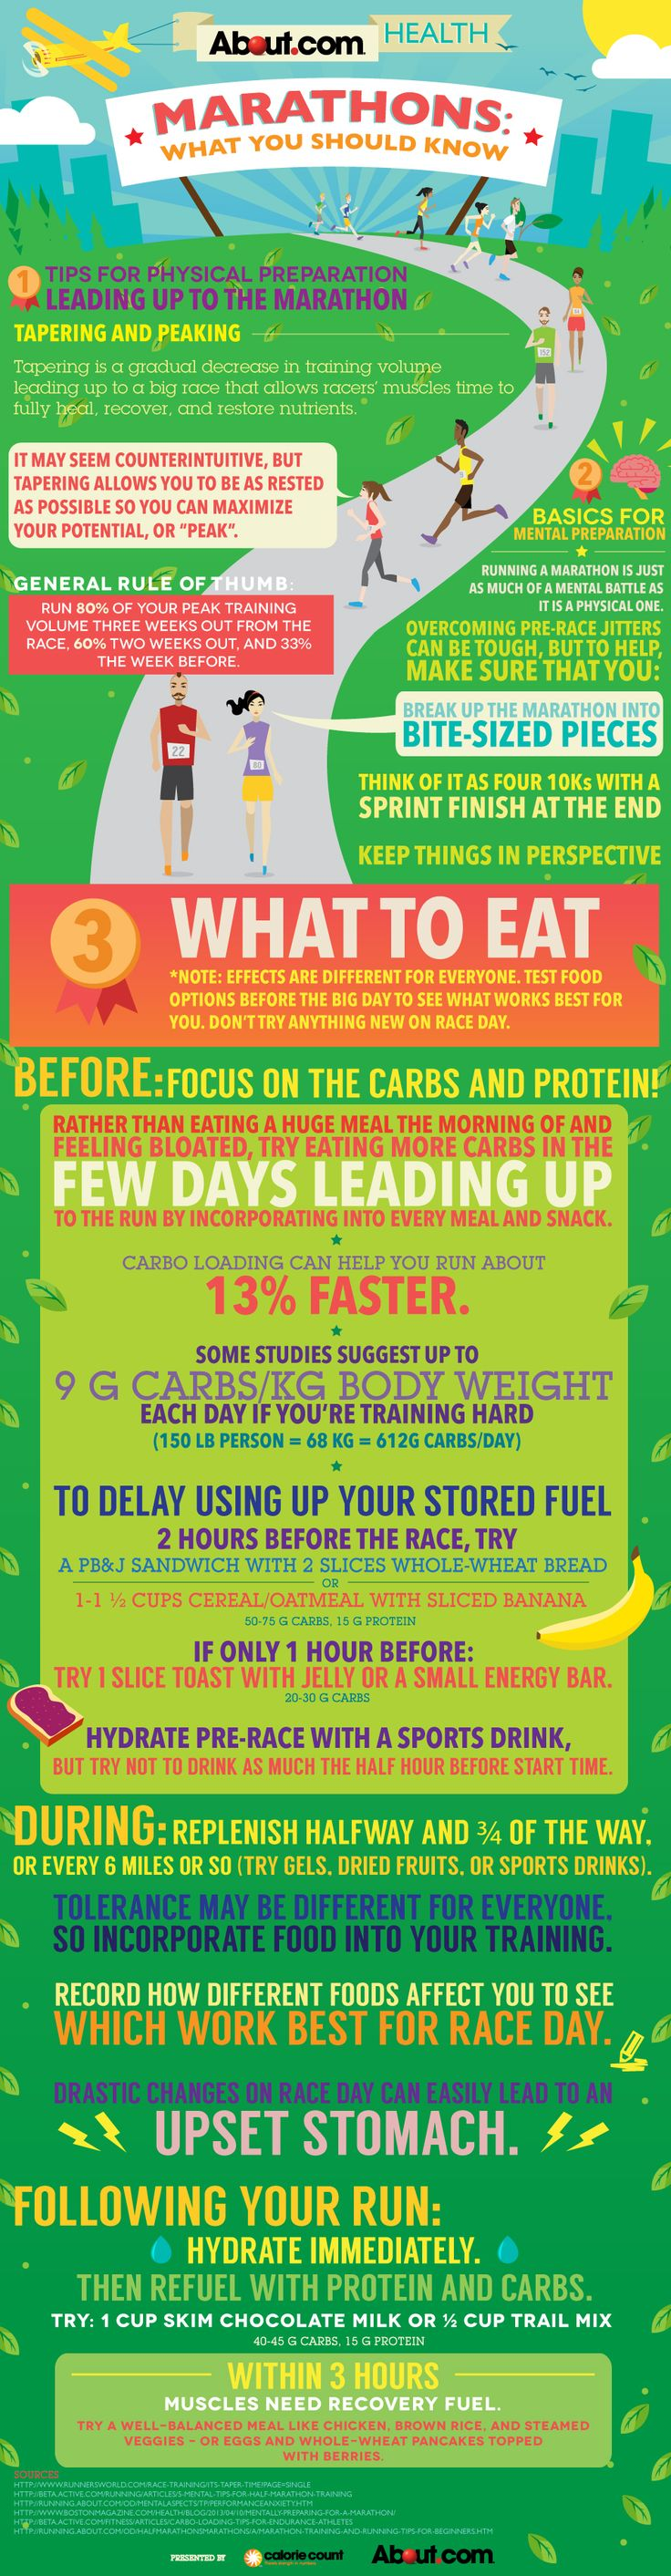 Training for a marathon or race this season? Check out our infographic for tips on nutrition and mental strategy....